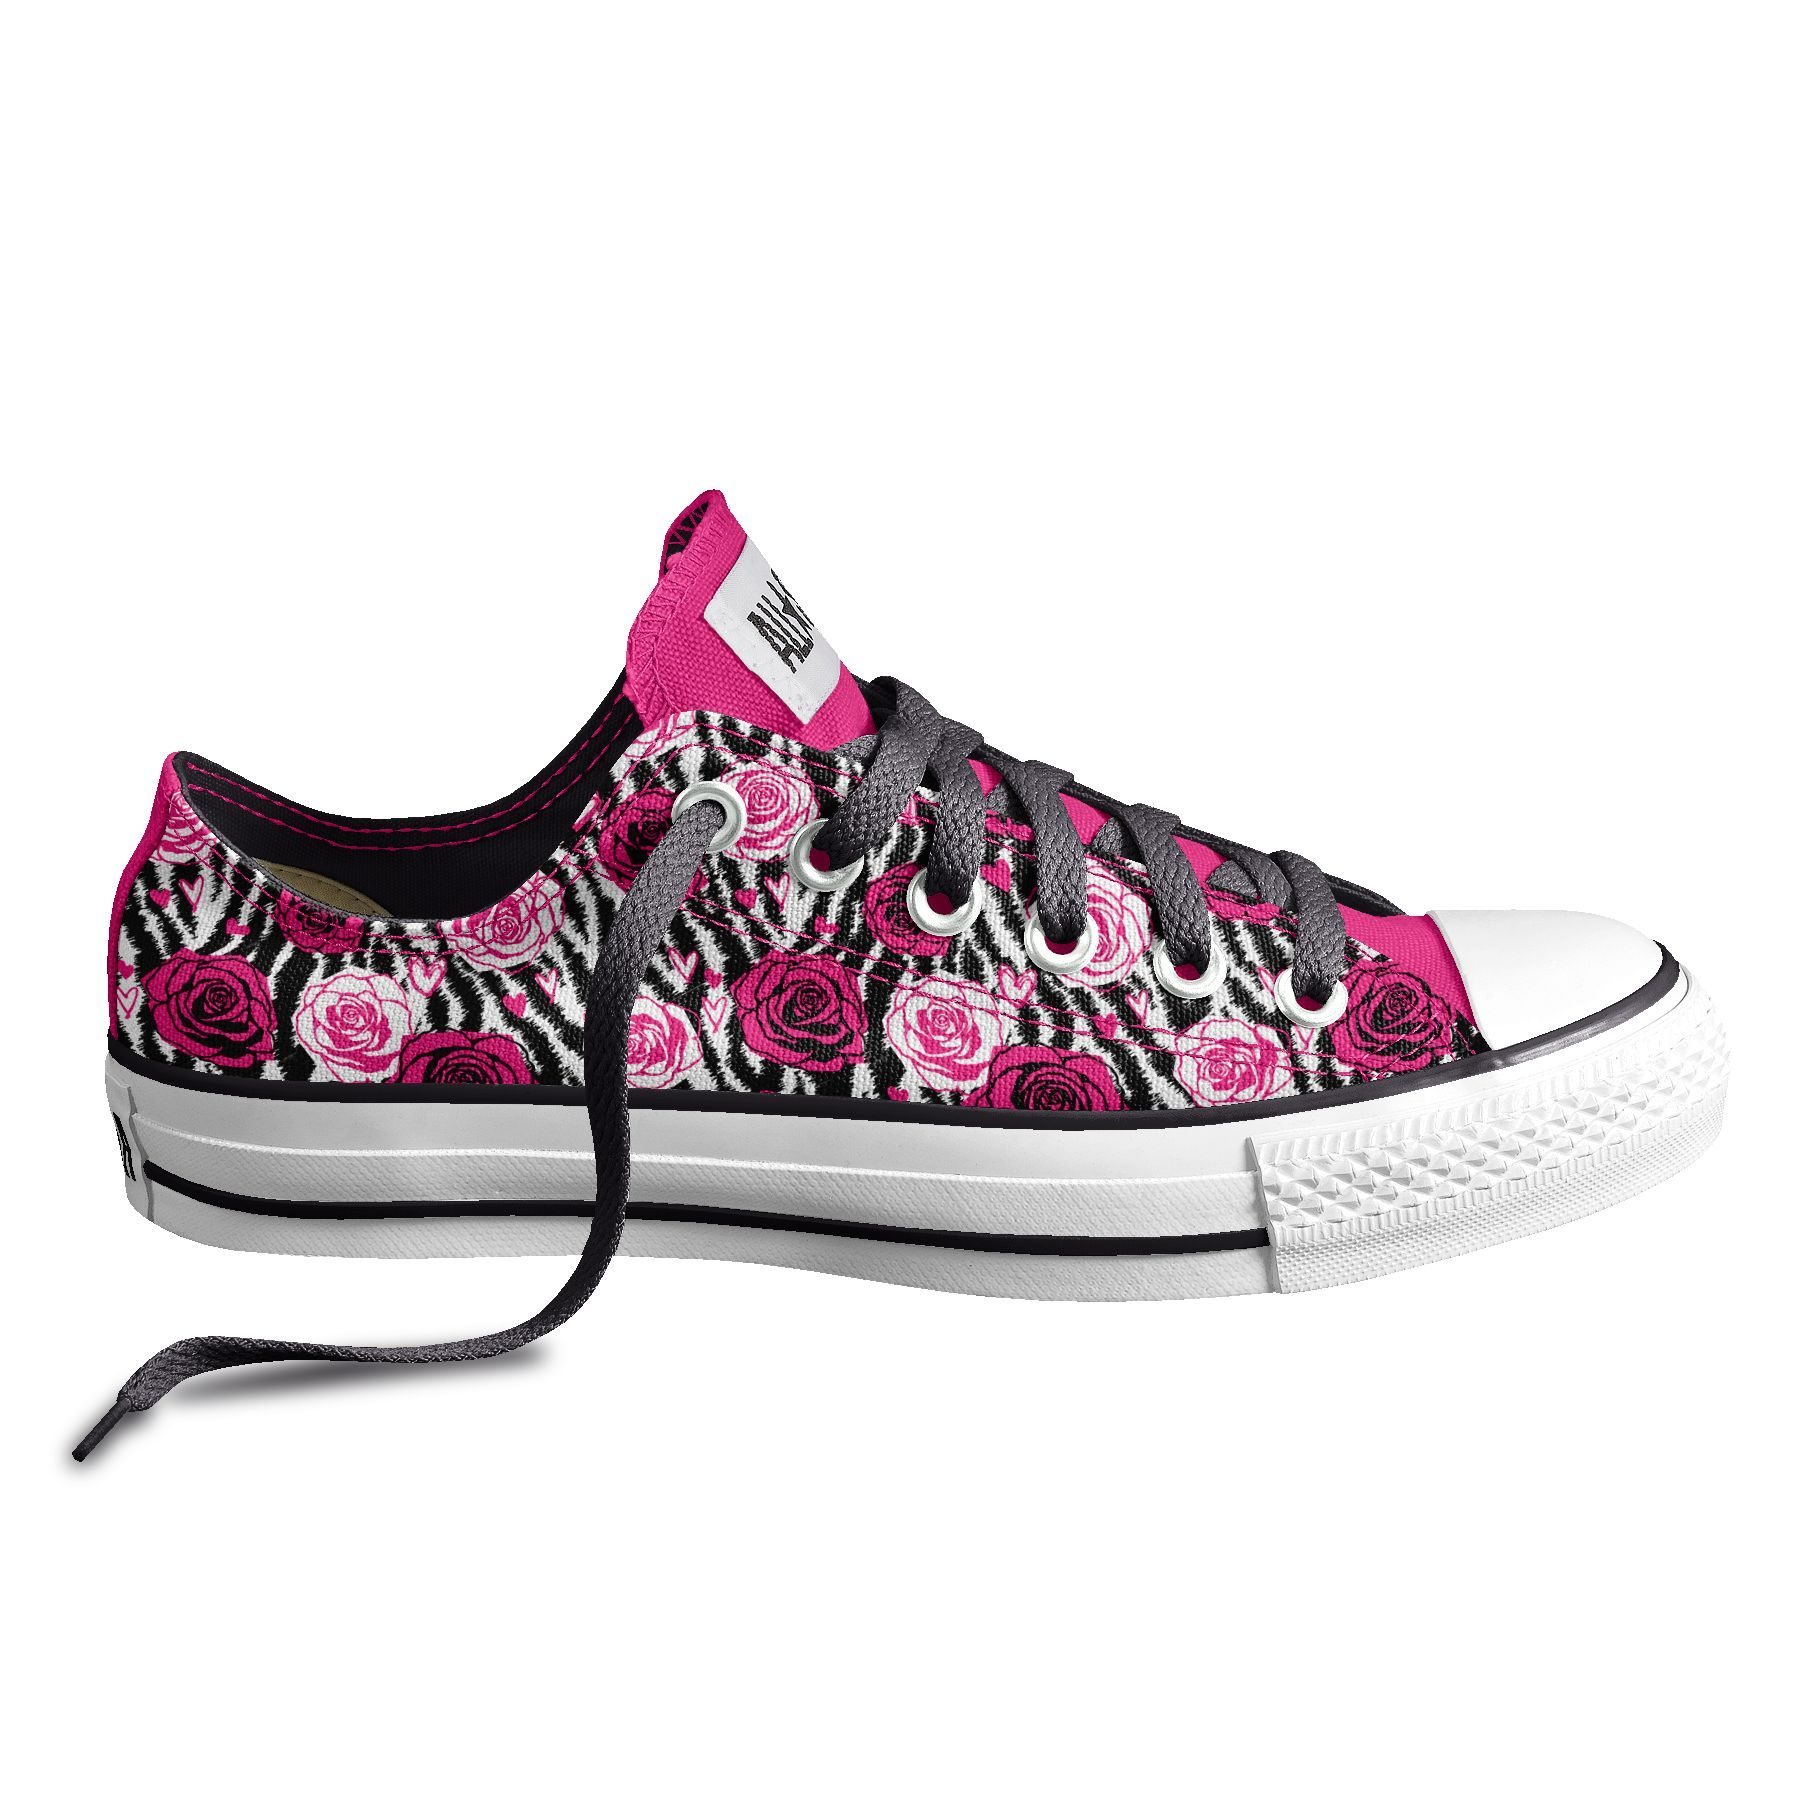 Exclusive Converse Chuck Taylor All Star Andy Warhol Floral